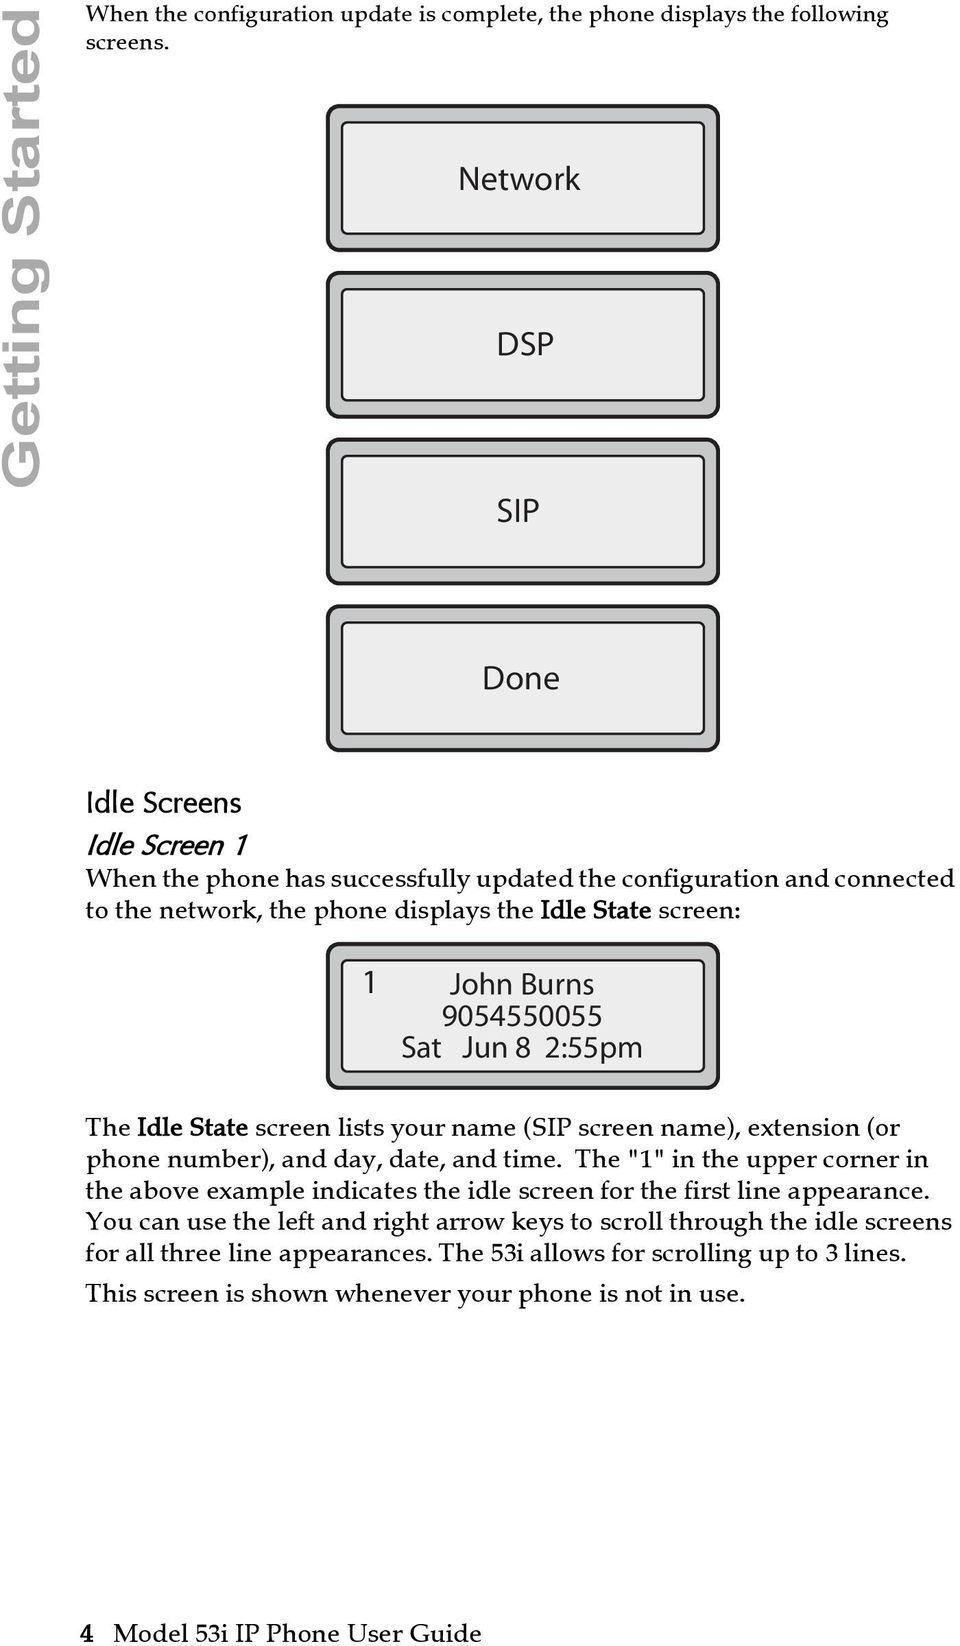 9054550055 Sat Jun 8 2:55pm The Idle State screen lists your name (SIP screen name), extension (or phone number), and day, date, and time.